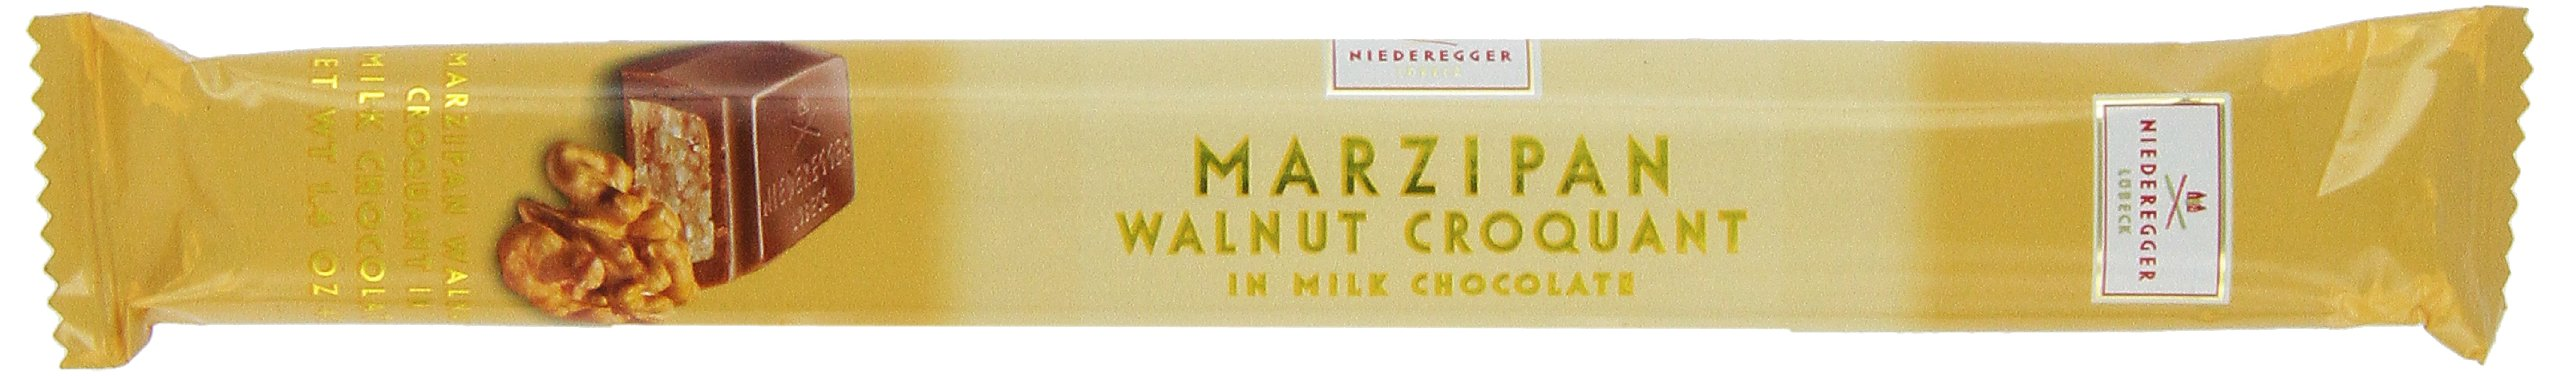 Niederegger Marzipan Stick Walnut, 1.4-Ounce (Pack of 8)